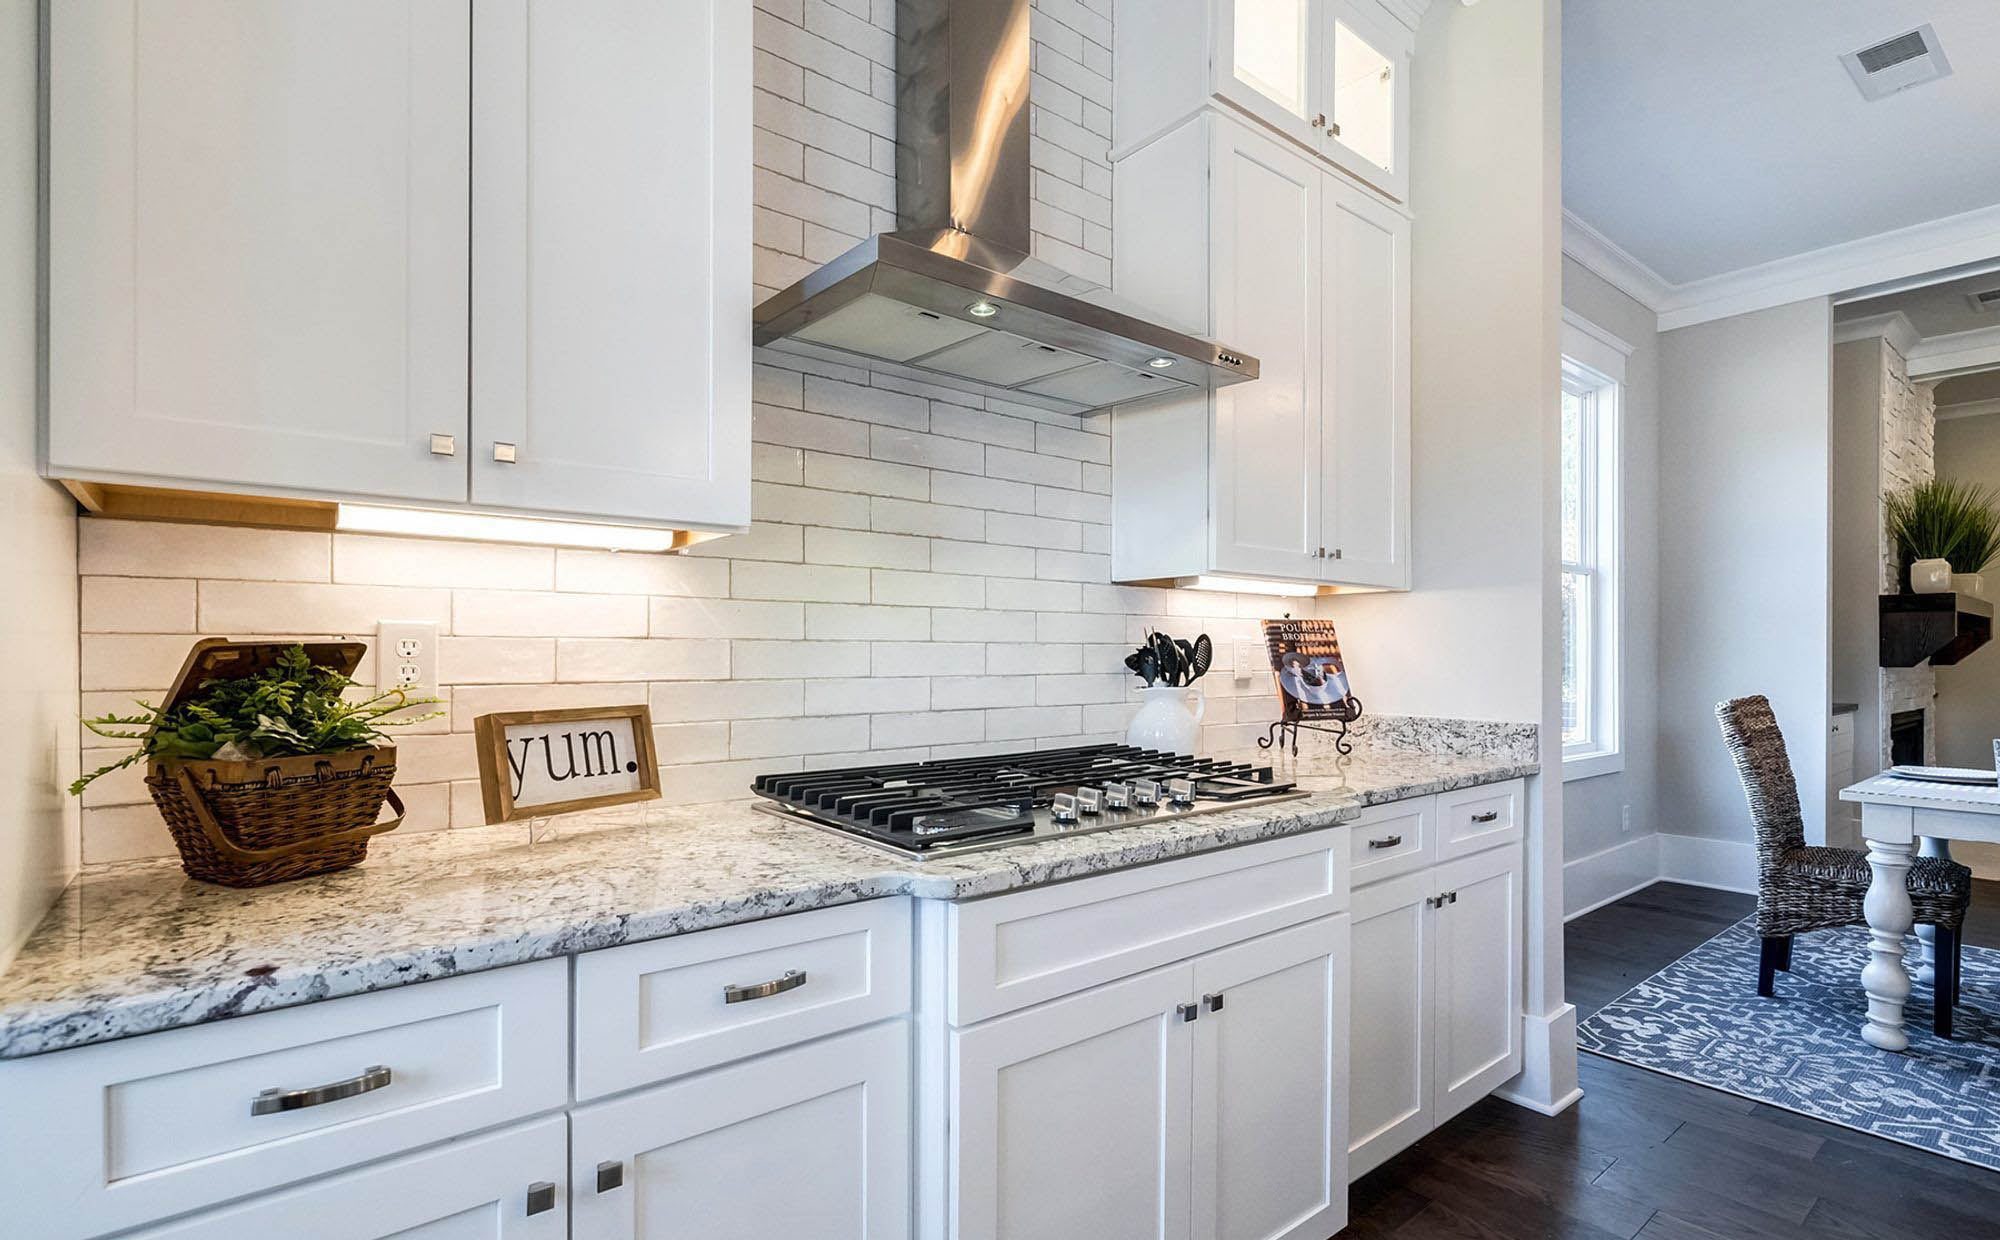 More white granite kitchen countertops with gold and brown. White subway tile backsplash with counter decorations.